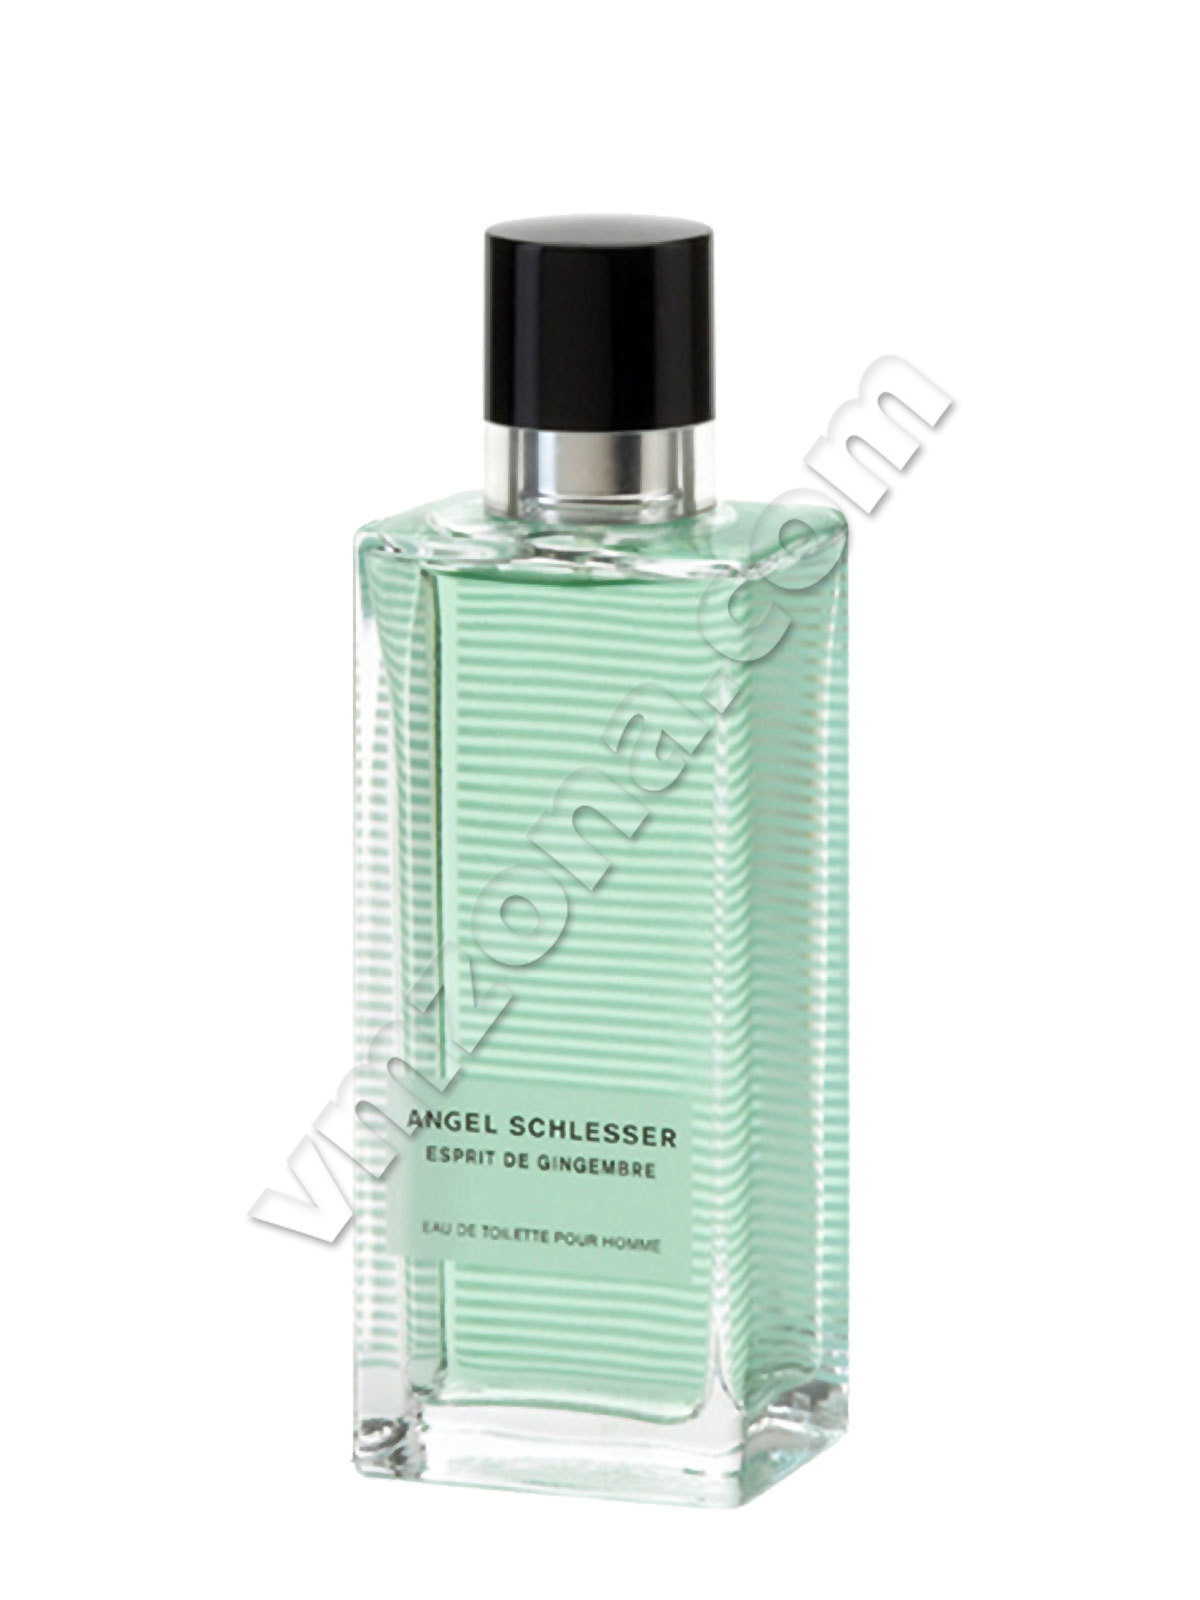 eau de toilette angel schlesser esprit de gingembre pour homme angel schlesser esprit de. Black Bedroom Furniture Sets. Home Design Ideas